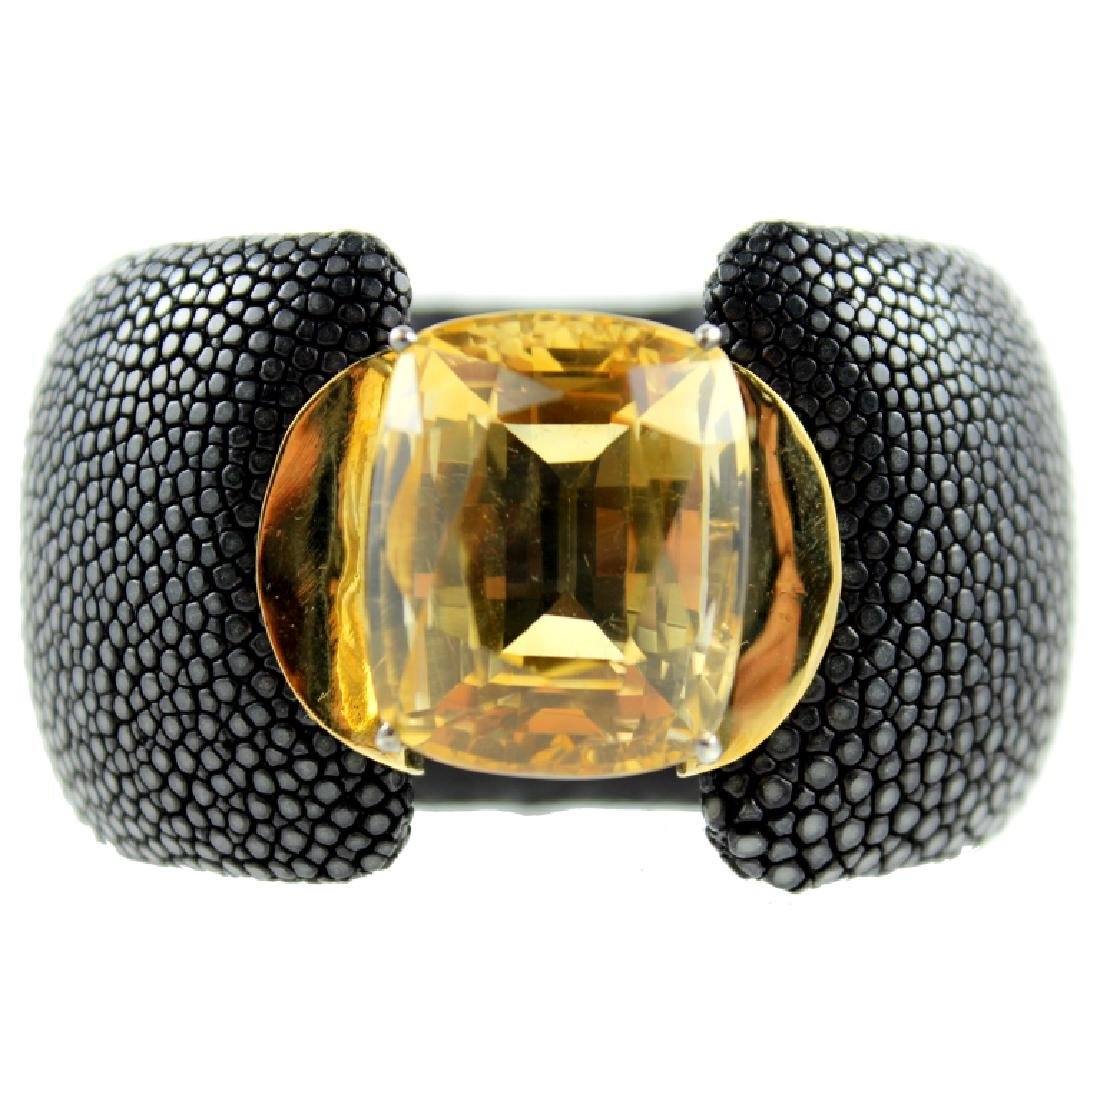 Citrine Stingray Skin Bangle Bracelet.